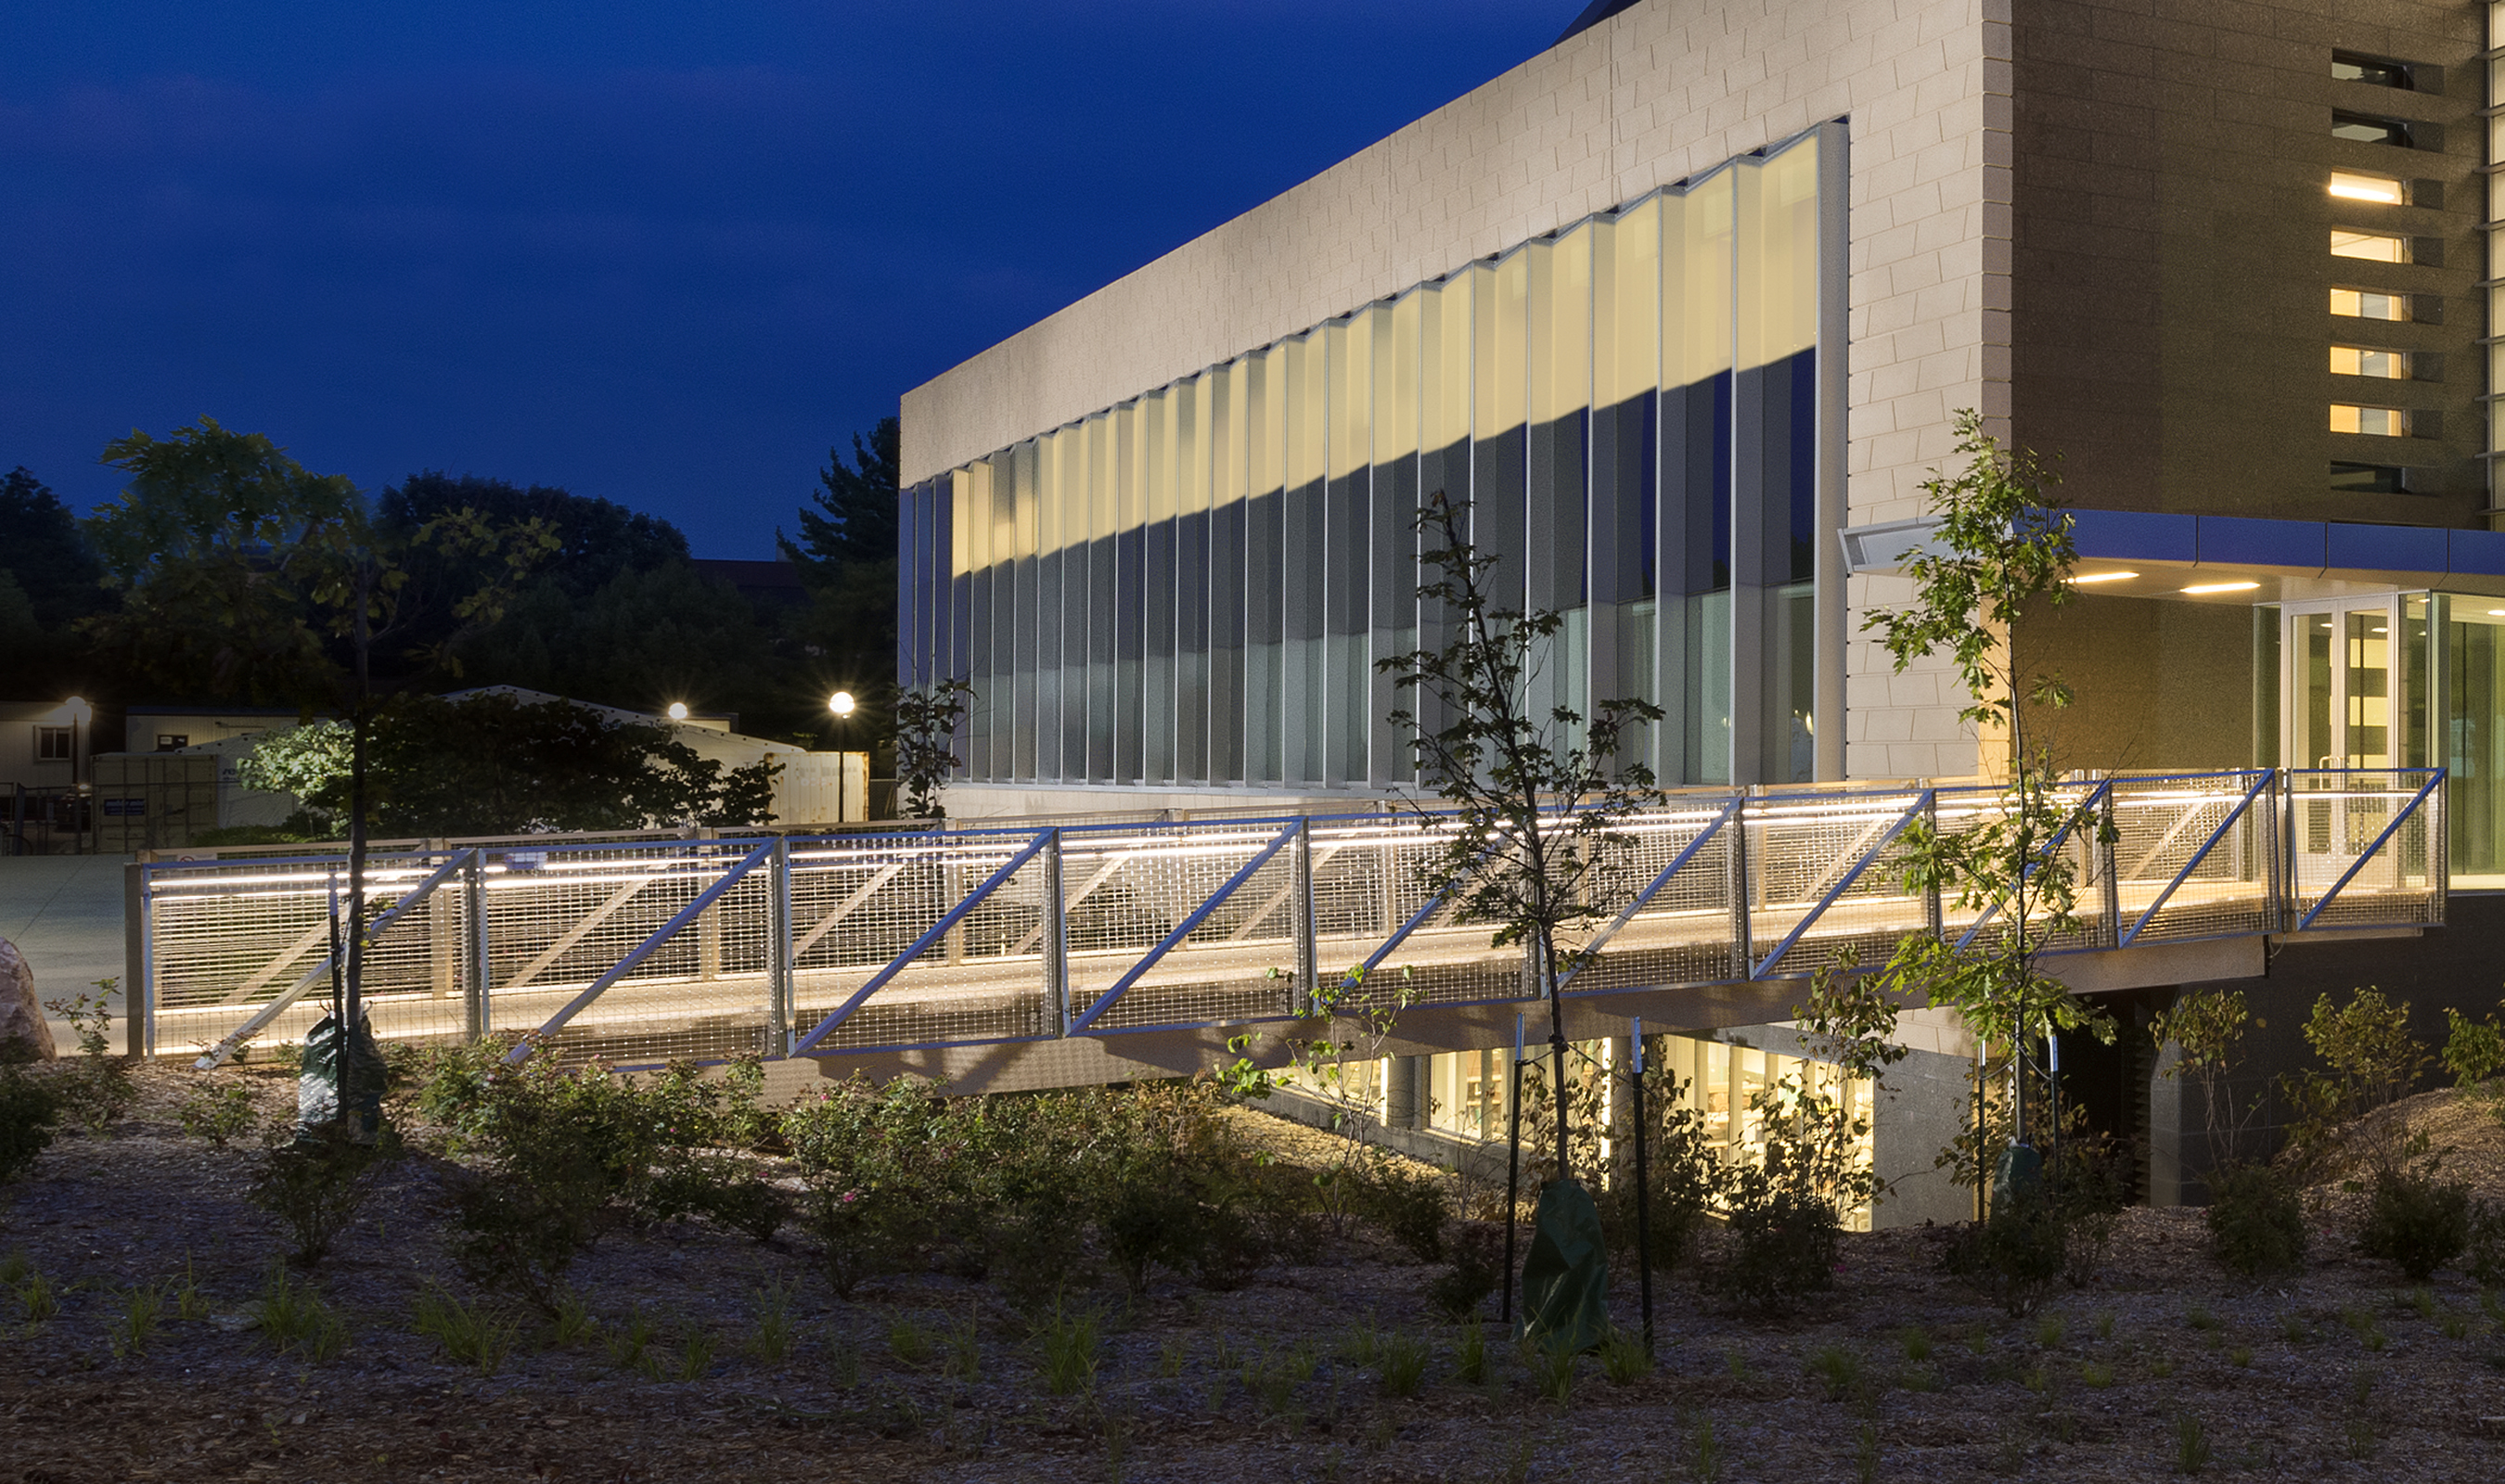 LZ-55 was selected as part of the railing for the GG Brown Building at the University of Michigan.